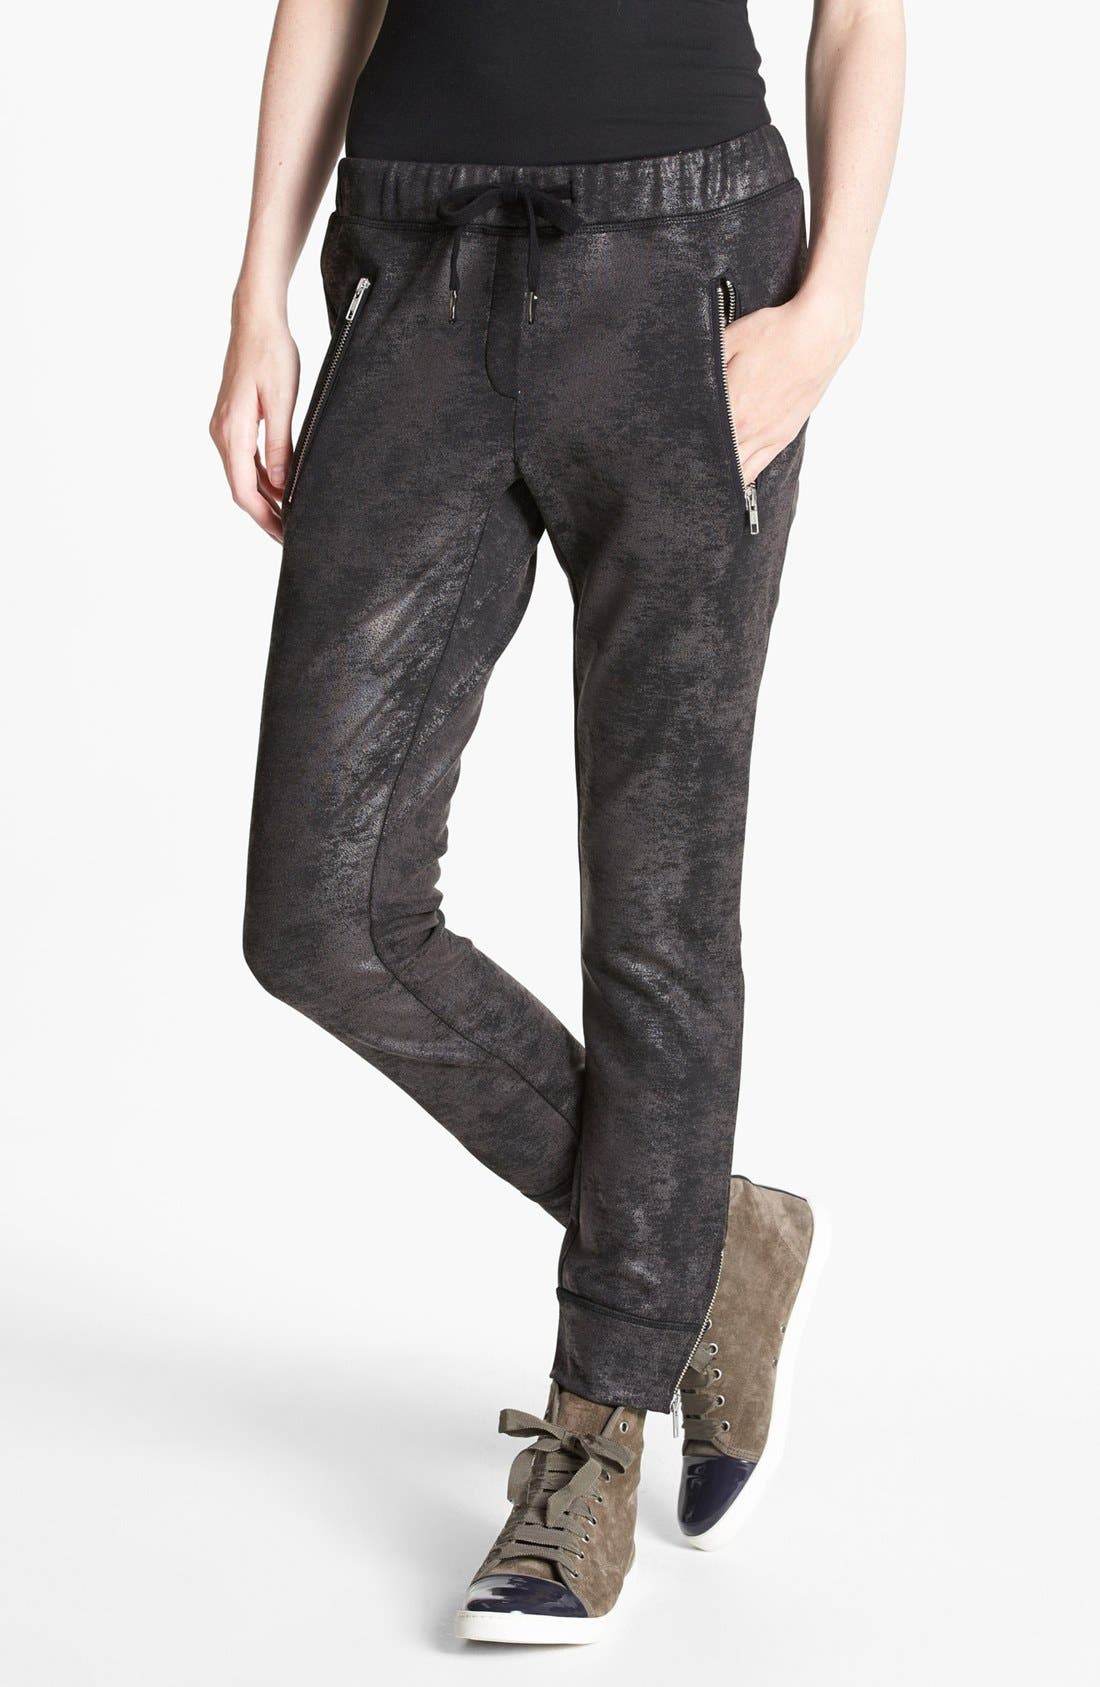 Main Image - The Kooples 'Oil Slick' Print Sweatpants